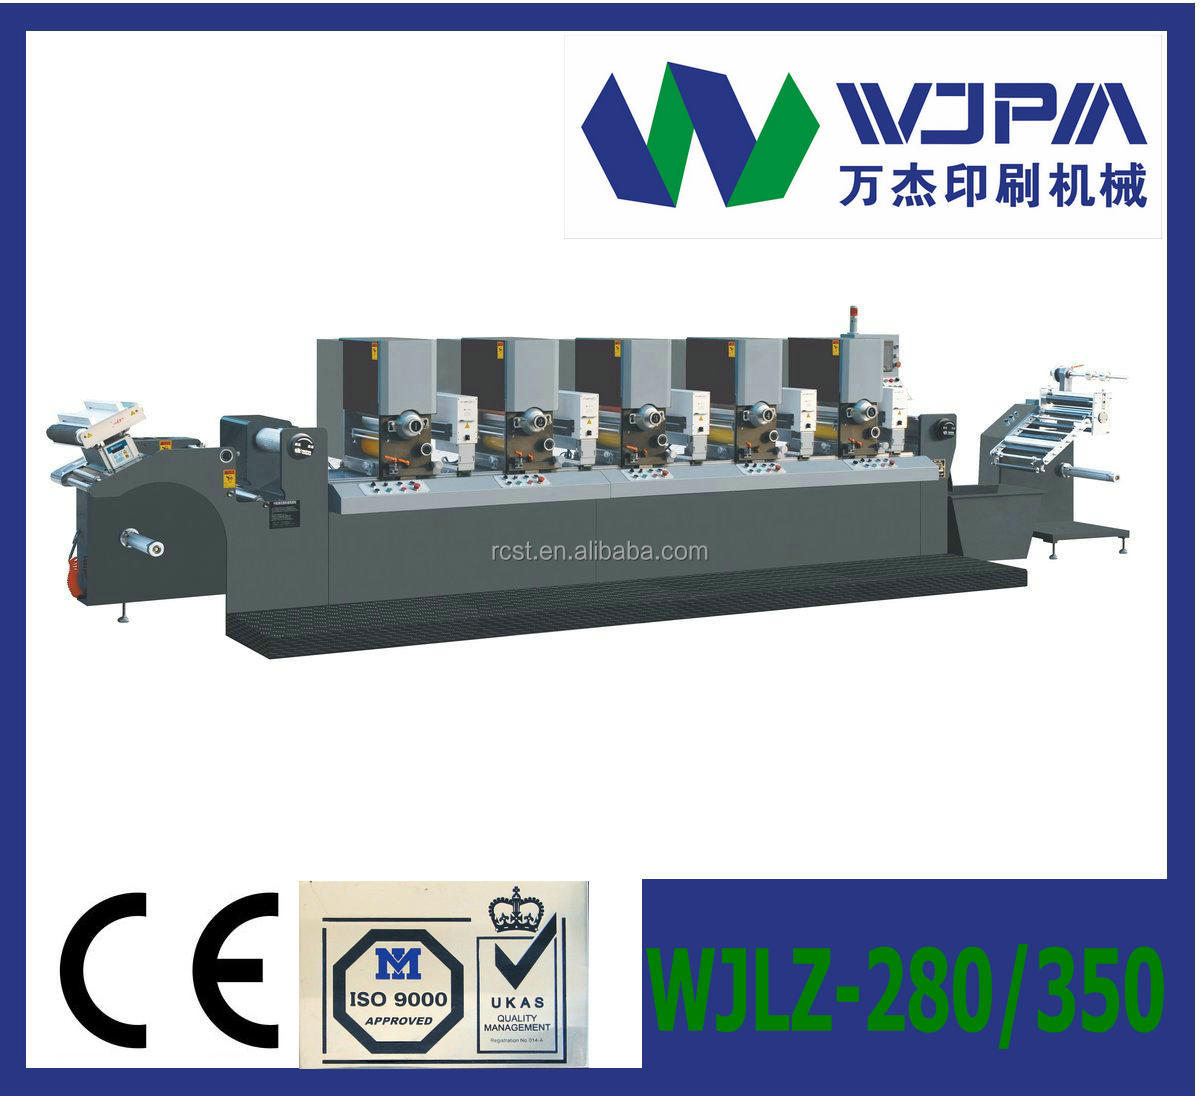 High-speed intermittent and full-rotary die-cutting machine